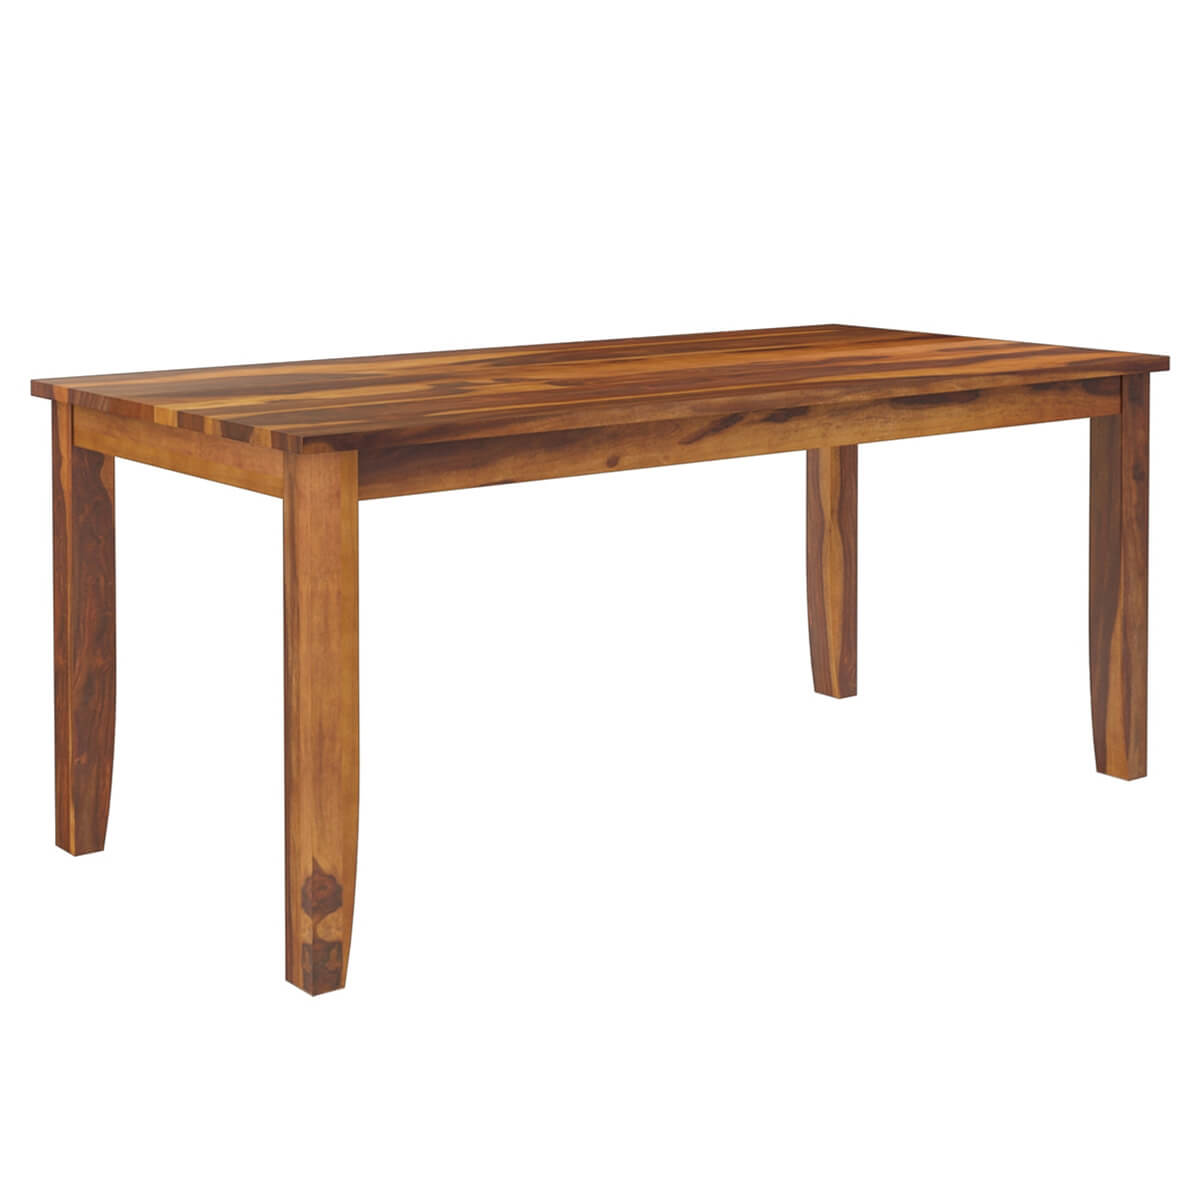 Cariboo contemporary tapered legs solid wood dining table for Contemporary wood dining table